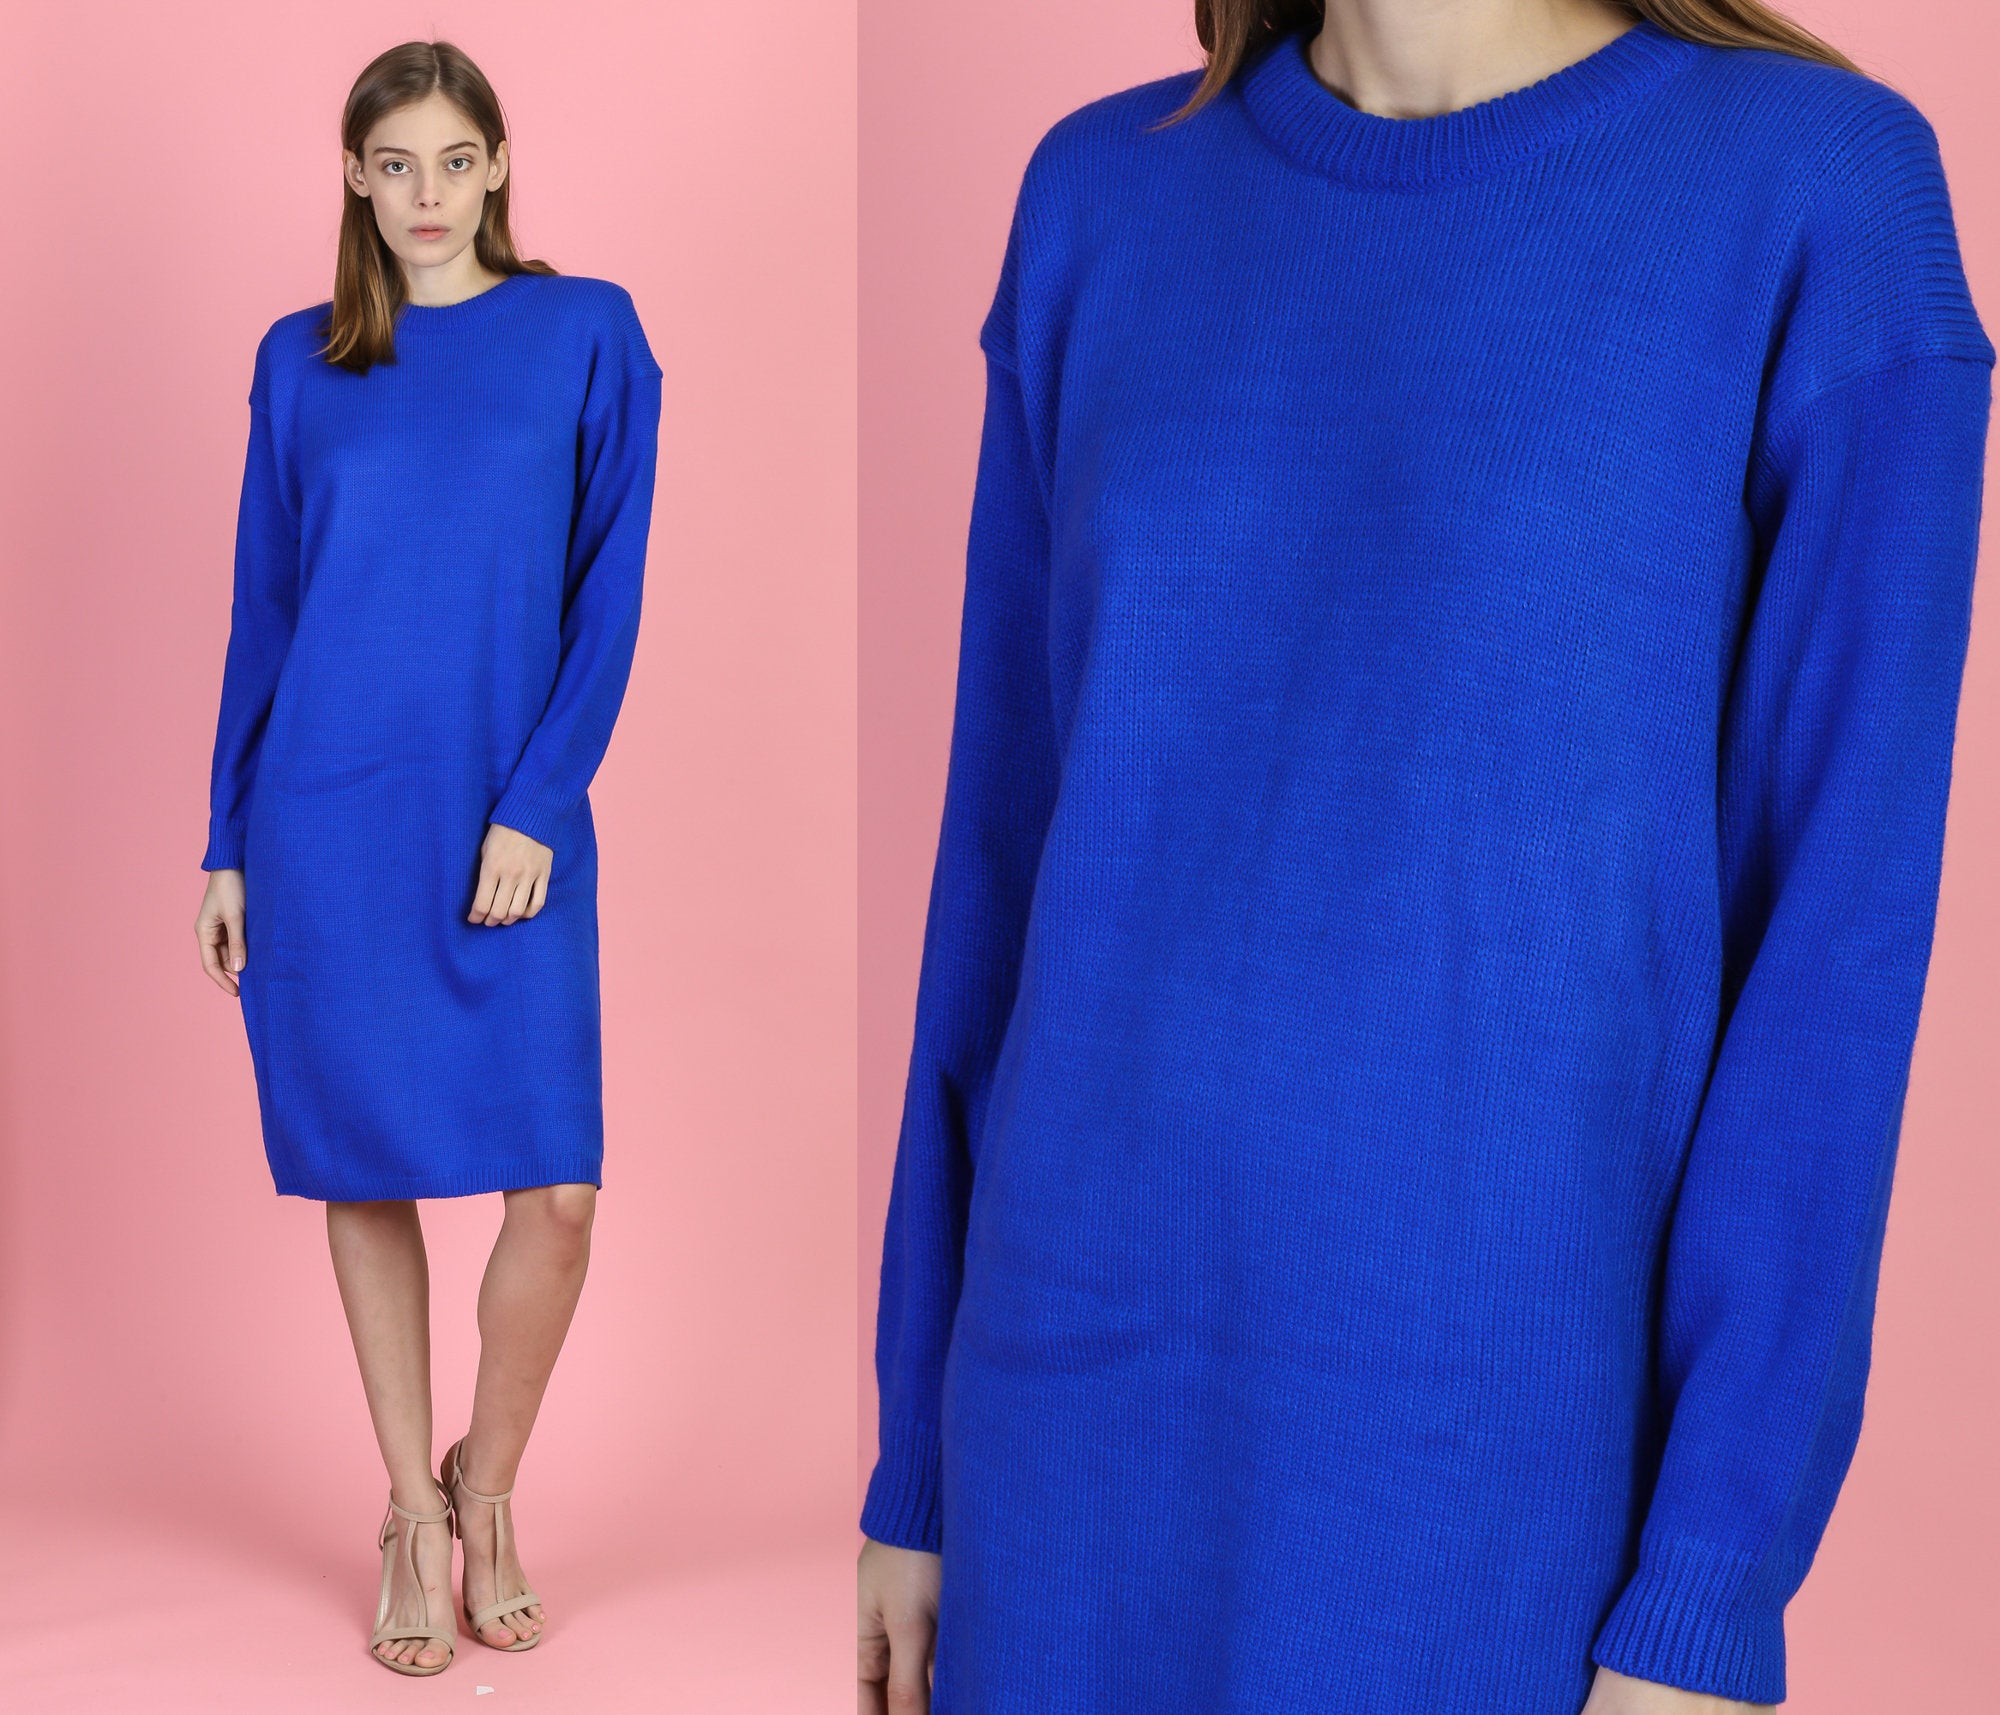 80s Royal Blue Sweater Dress - Medium